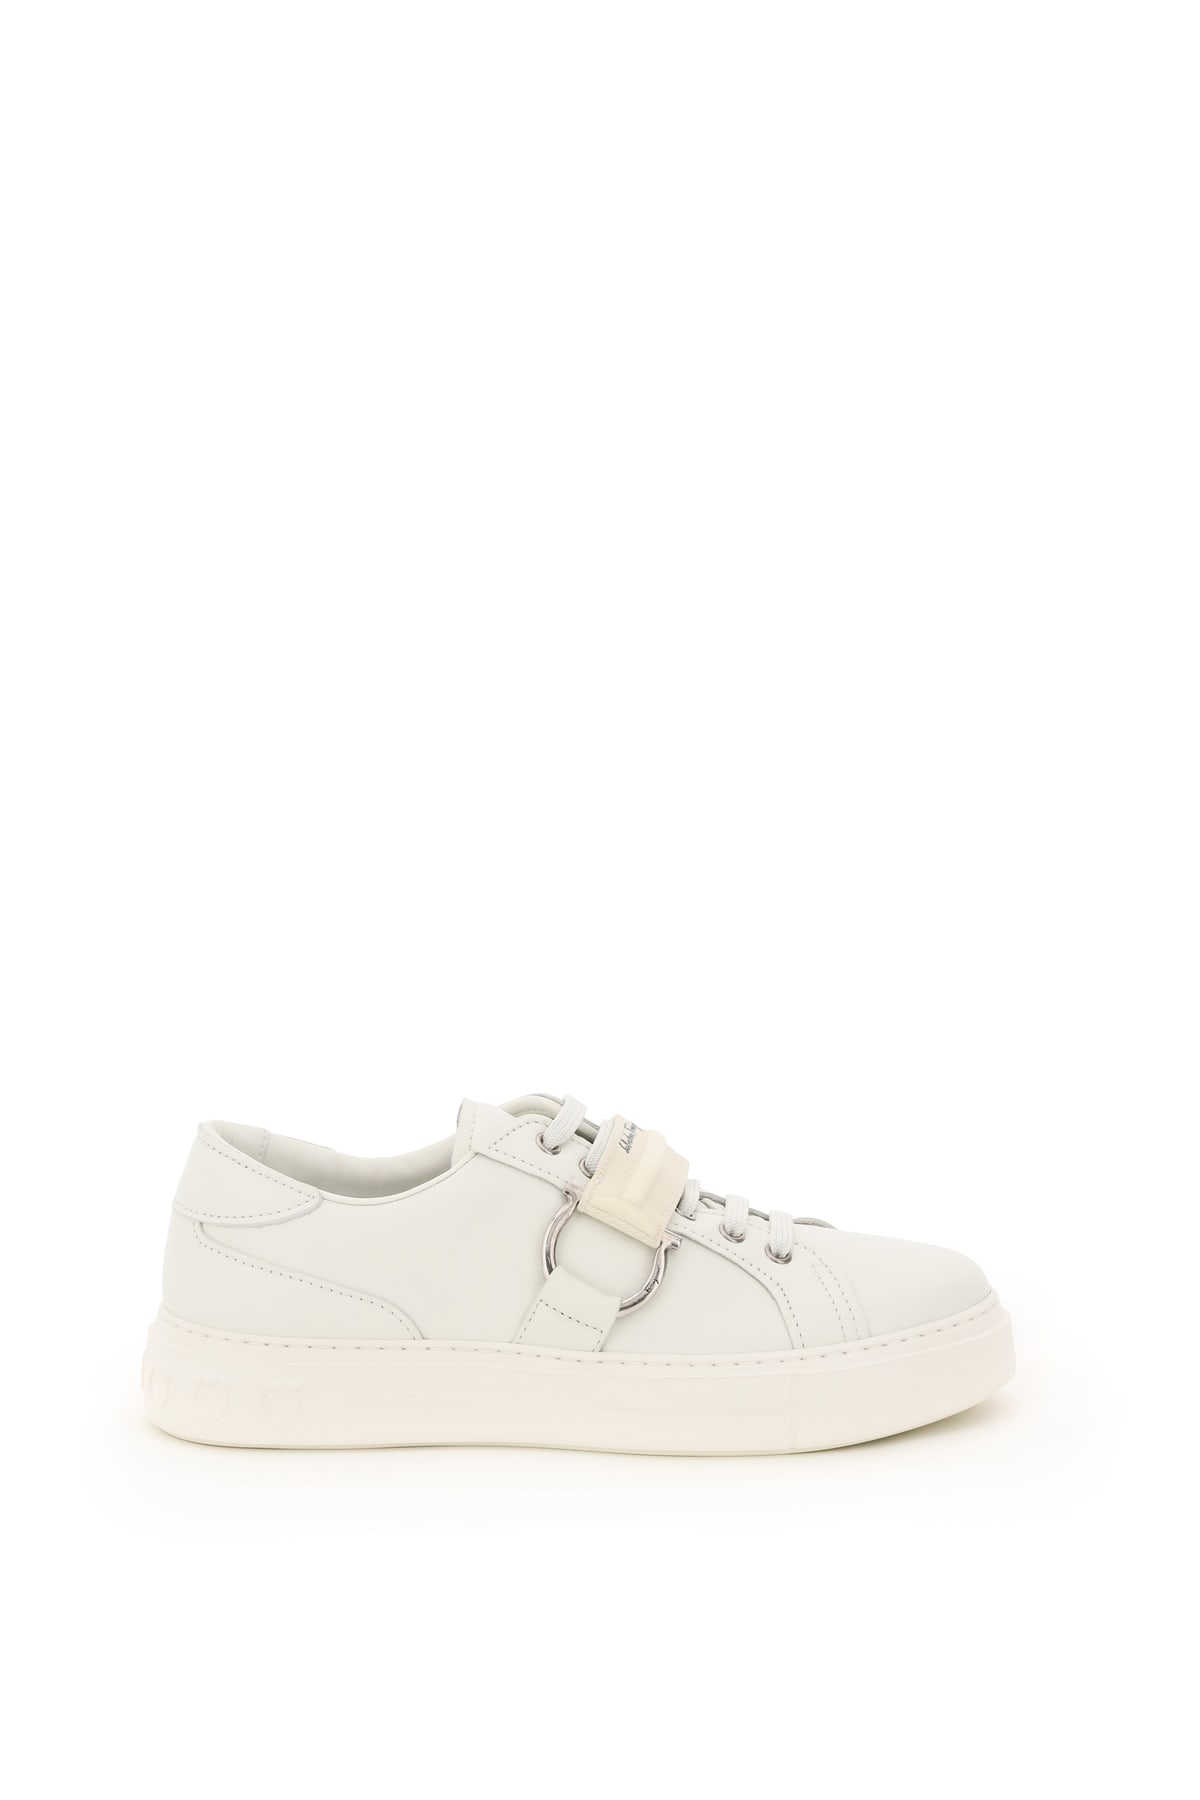 Salvatore Ferragamo Leathers PHARREL LEATHER SNEAKERS